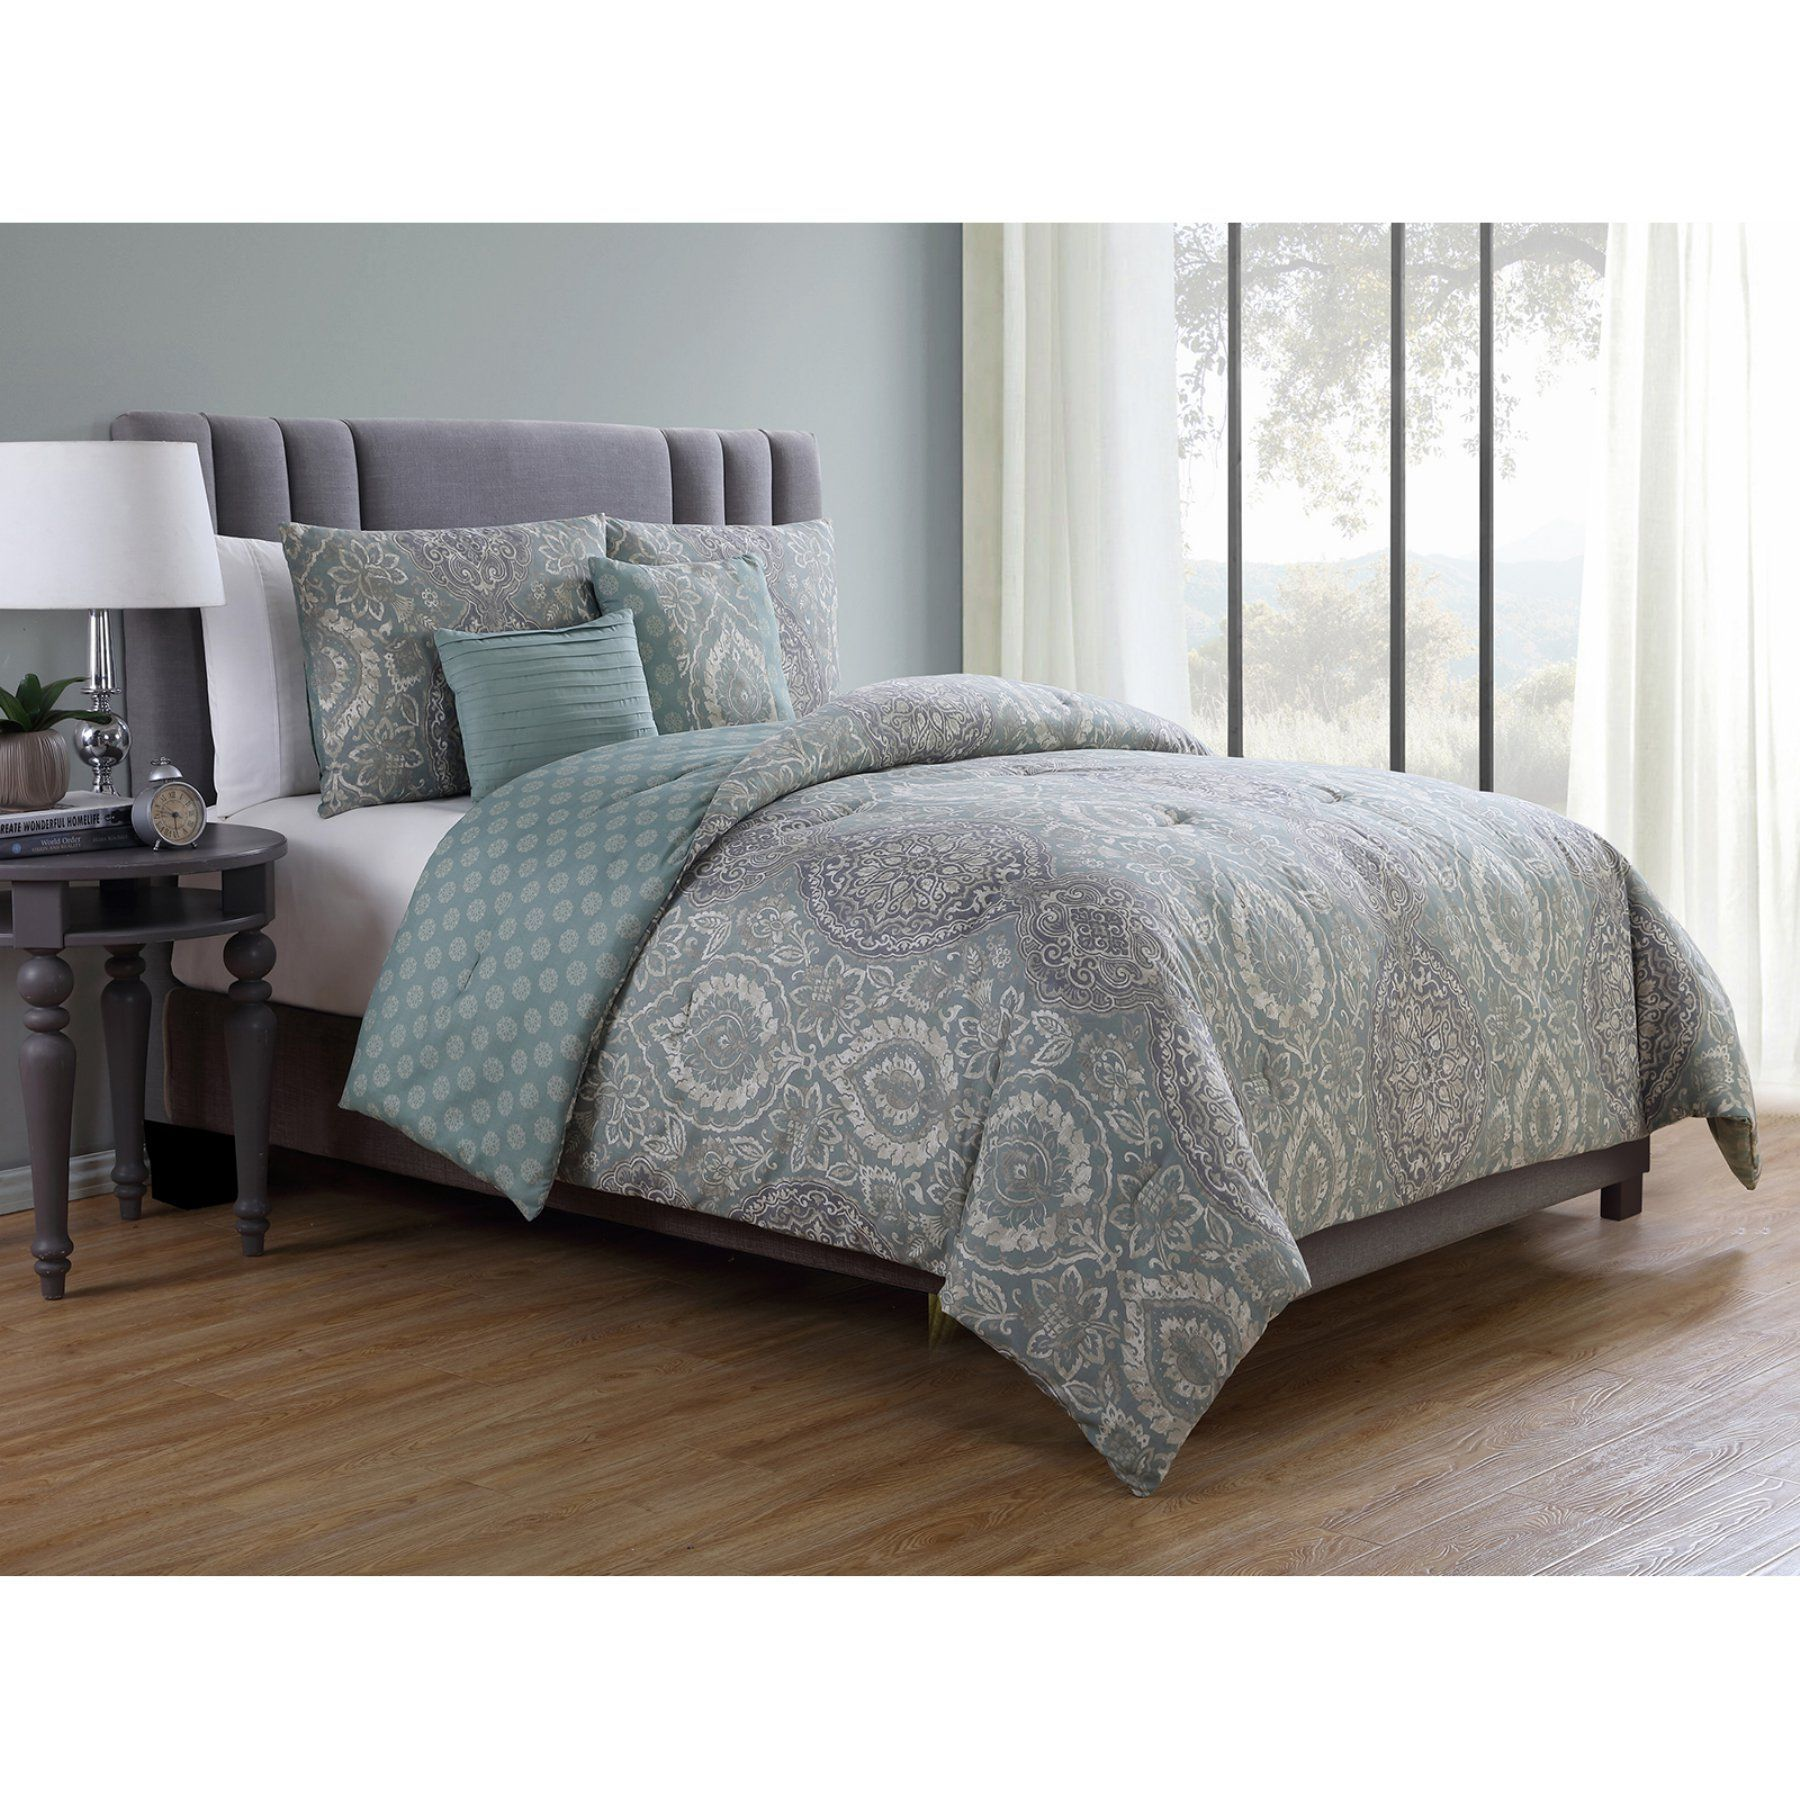 Victoria Medallion 5 Piece Reversible forter Set by VCNY Home